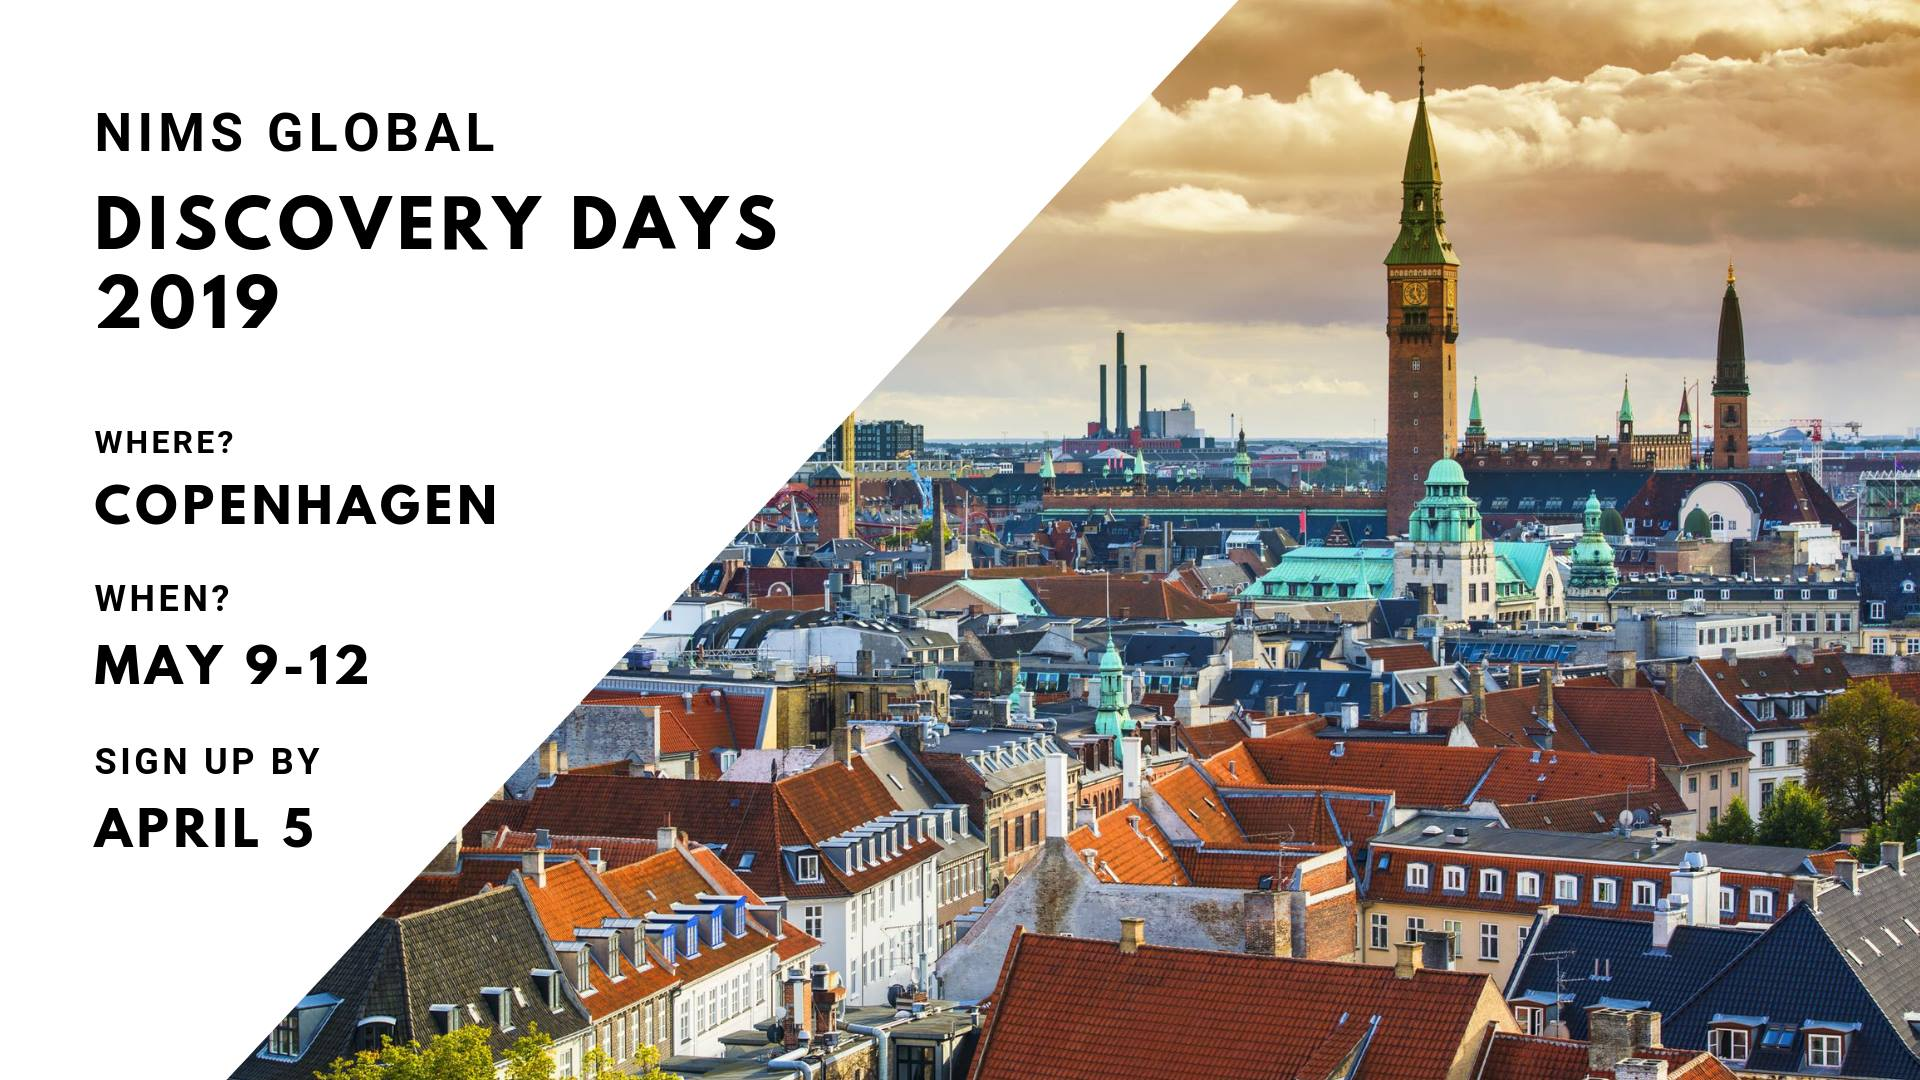 NIMS Discovery Days 2019